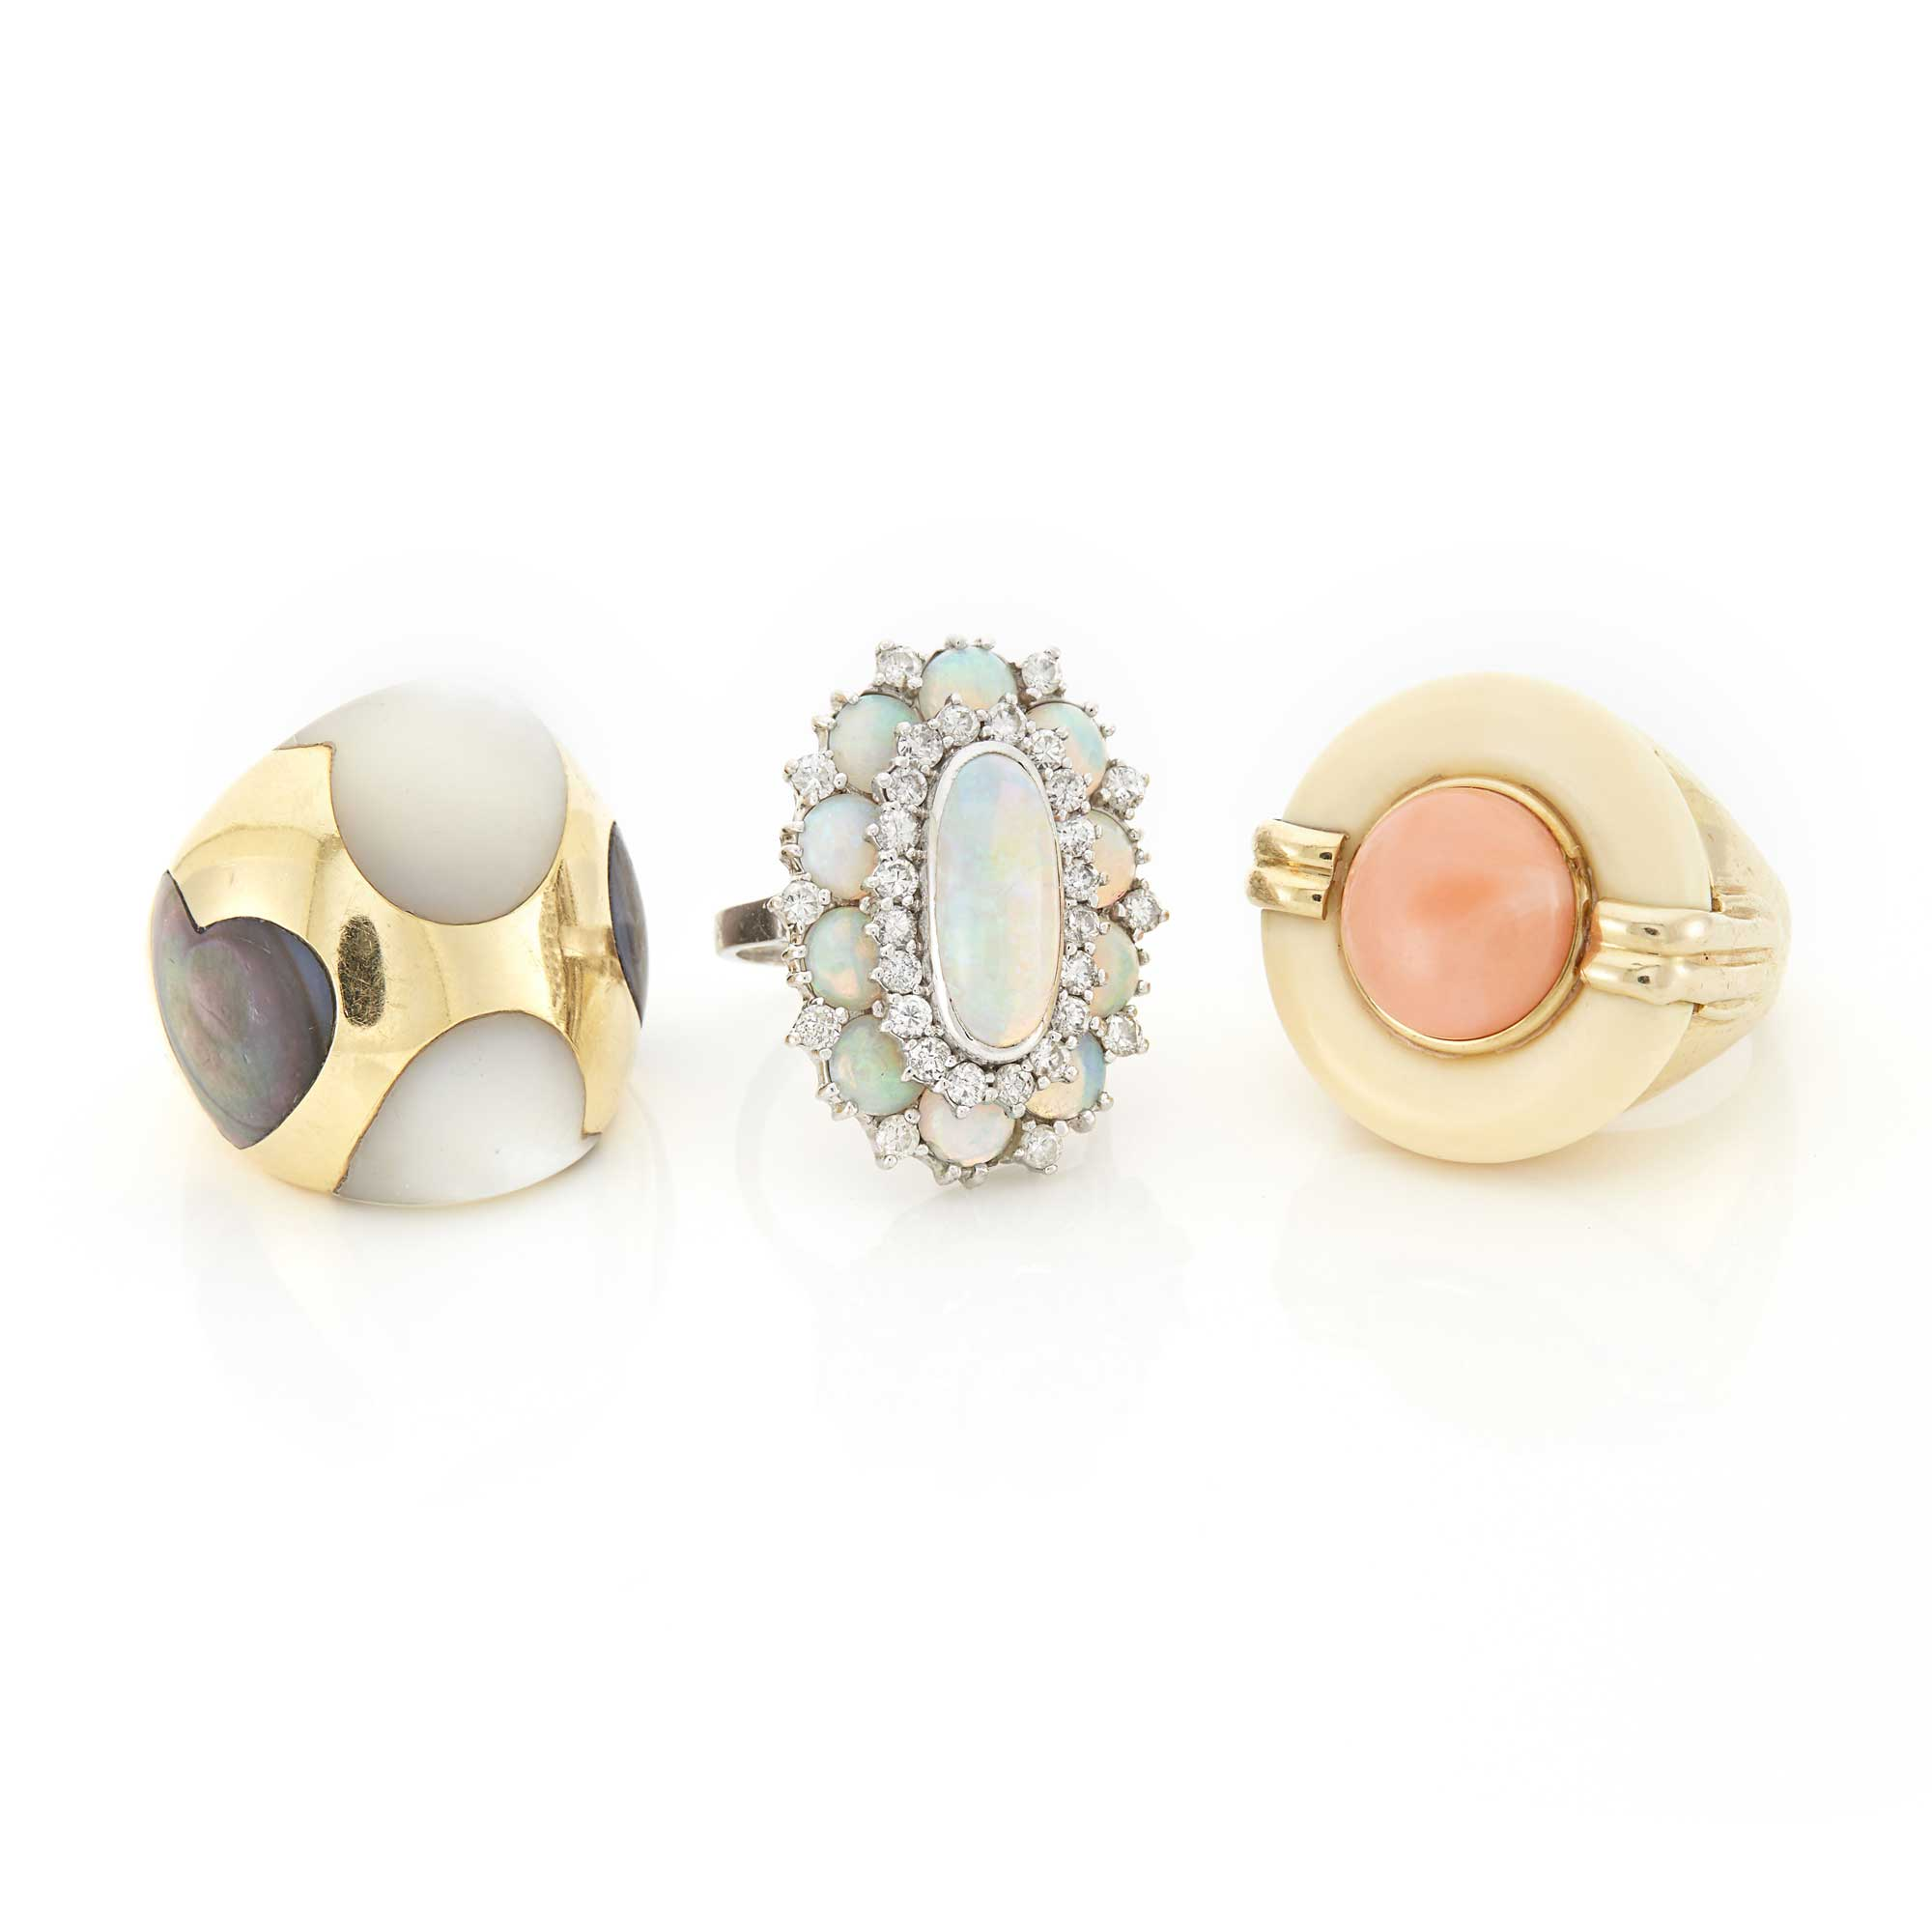 Lot image - Gold, Mother-of-Pearl and Abalone Shell Ring, Coral and Resin Ring and Opal and Diamond Ring